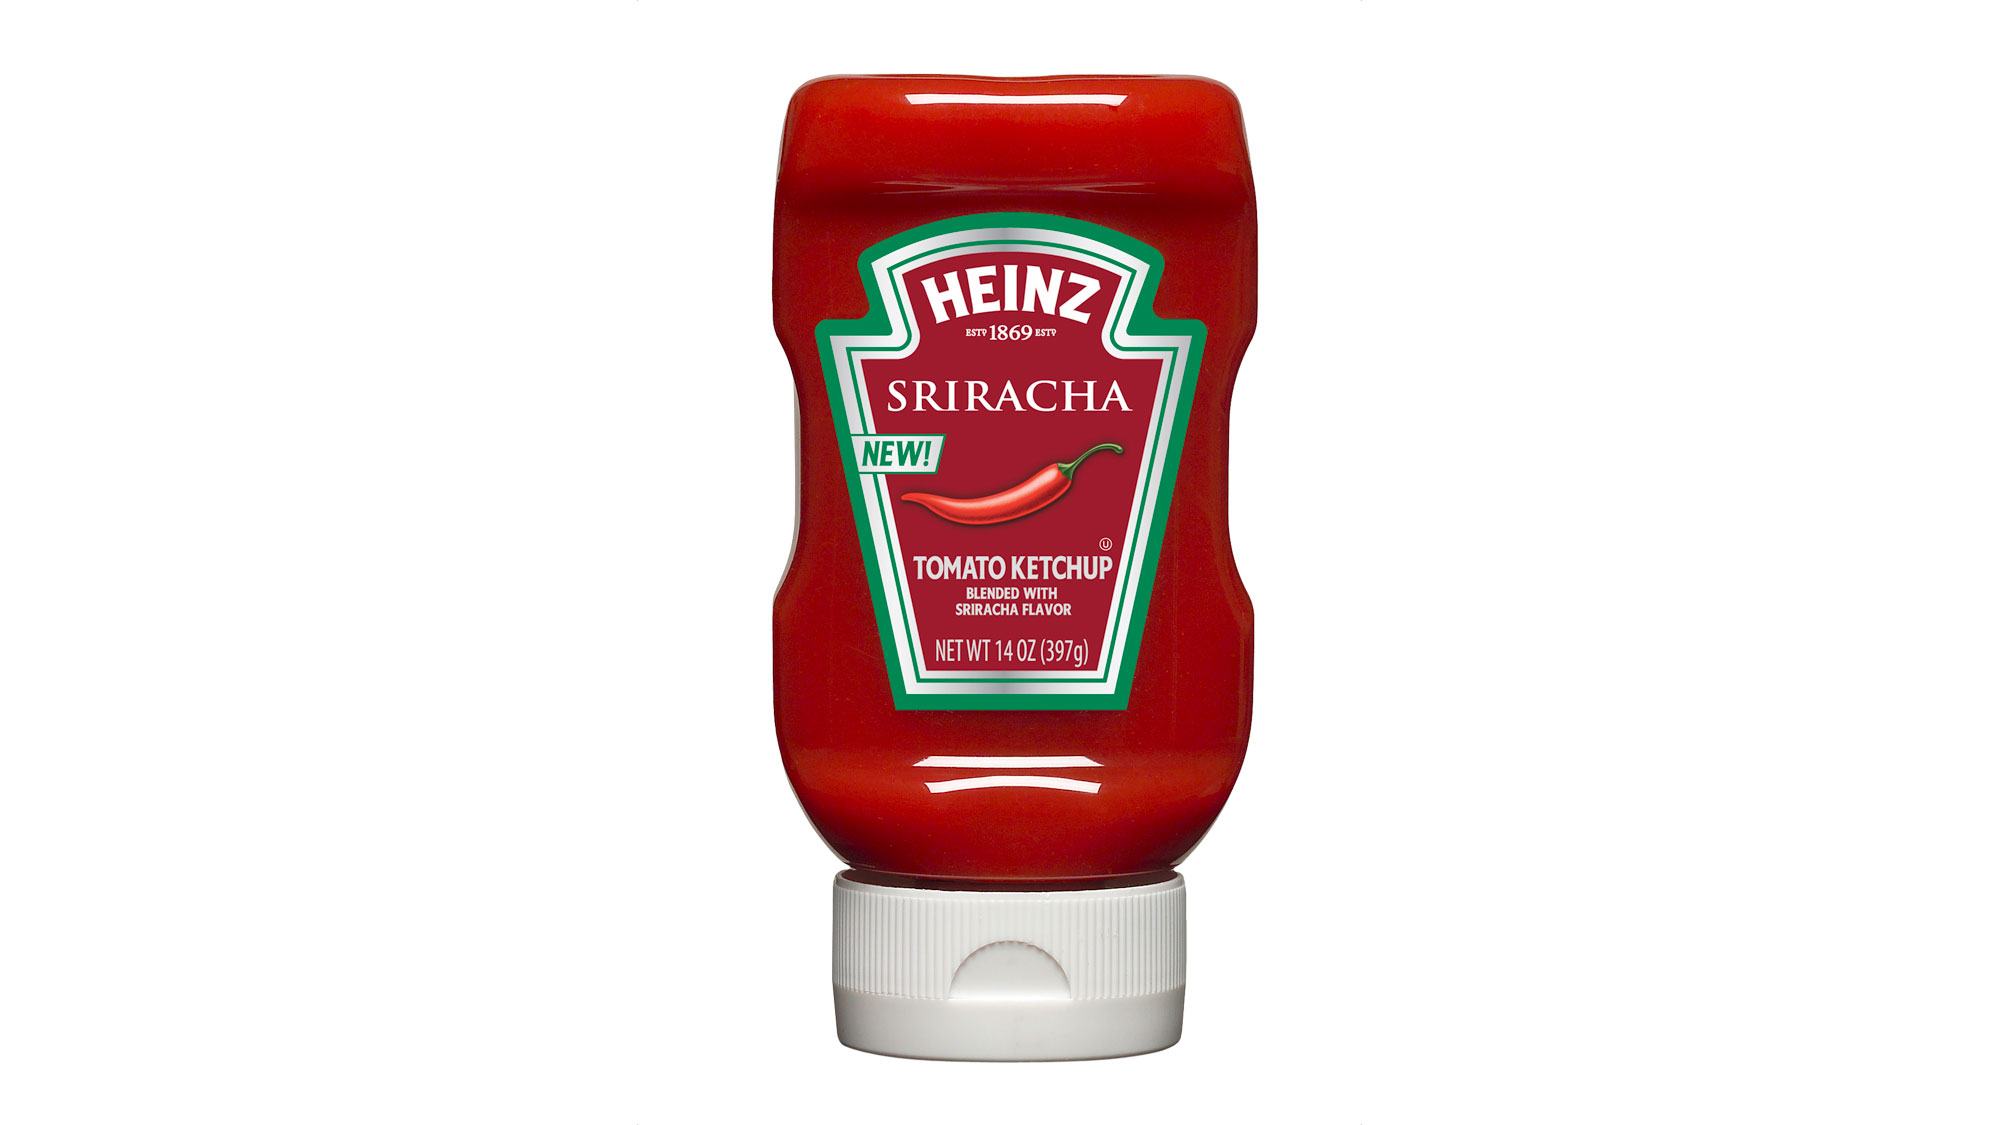 Heinz Tomato Ketchup Blended with Sriracha Flavor.